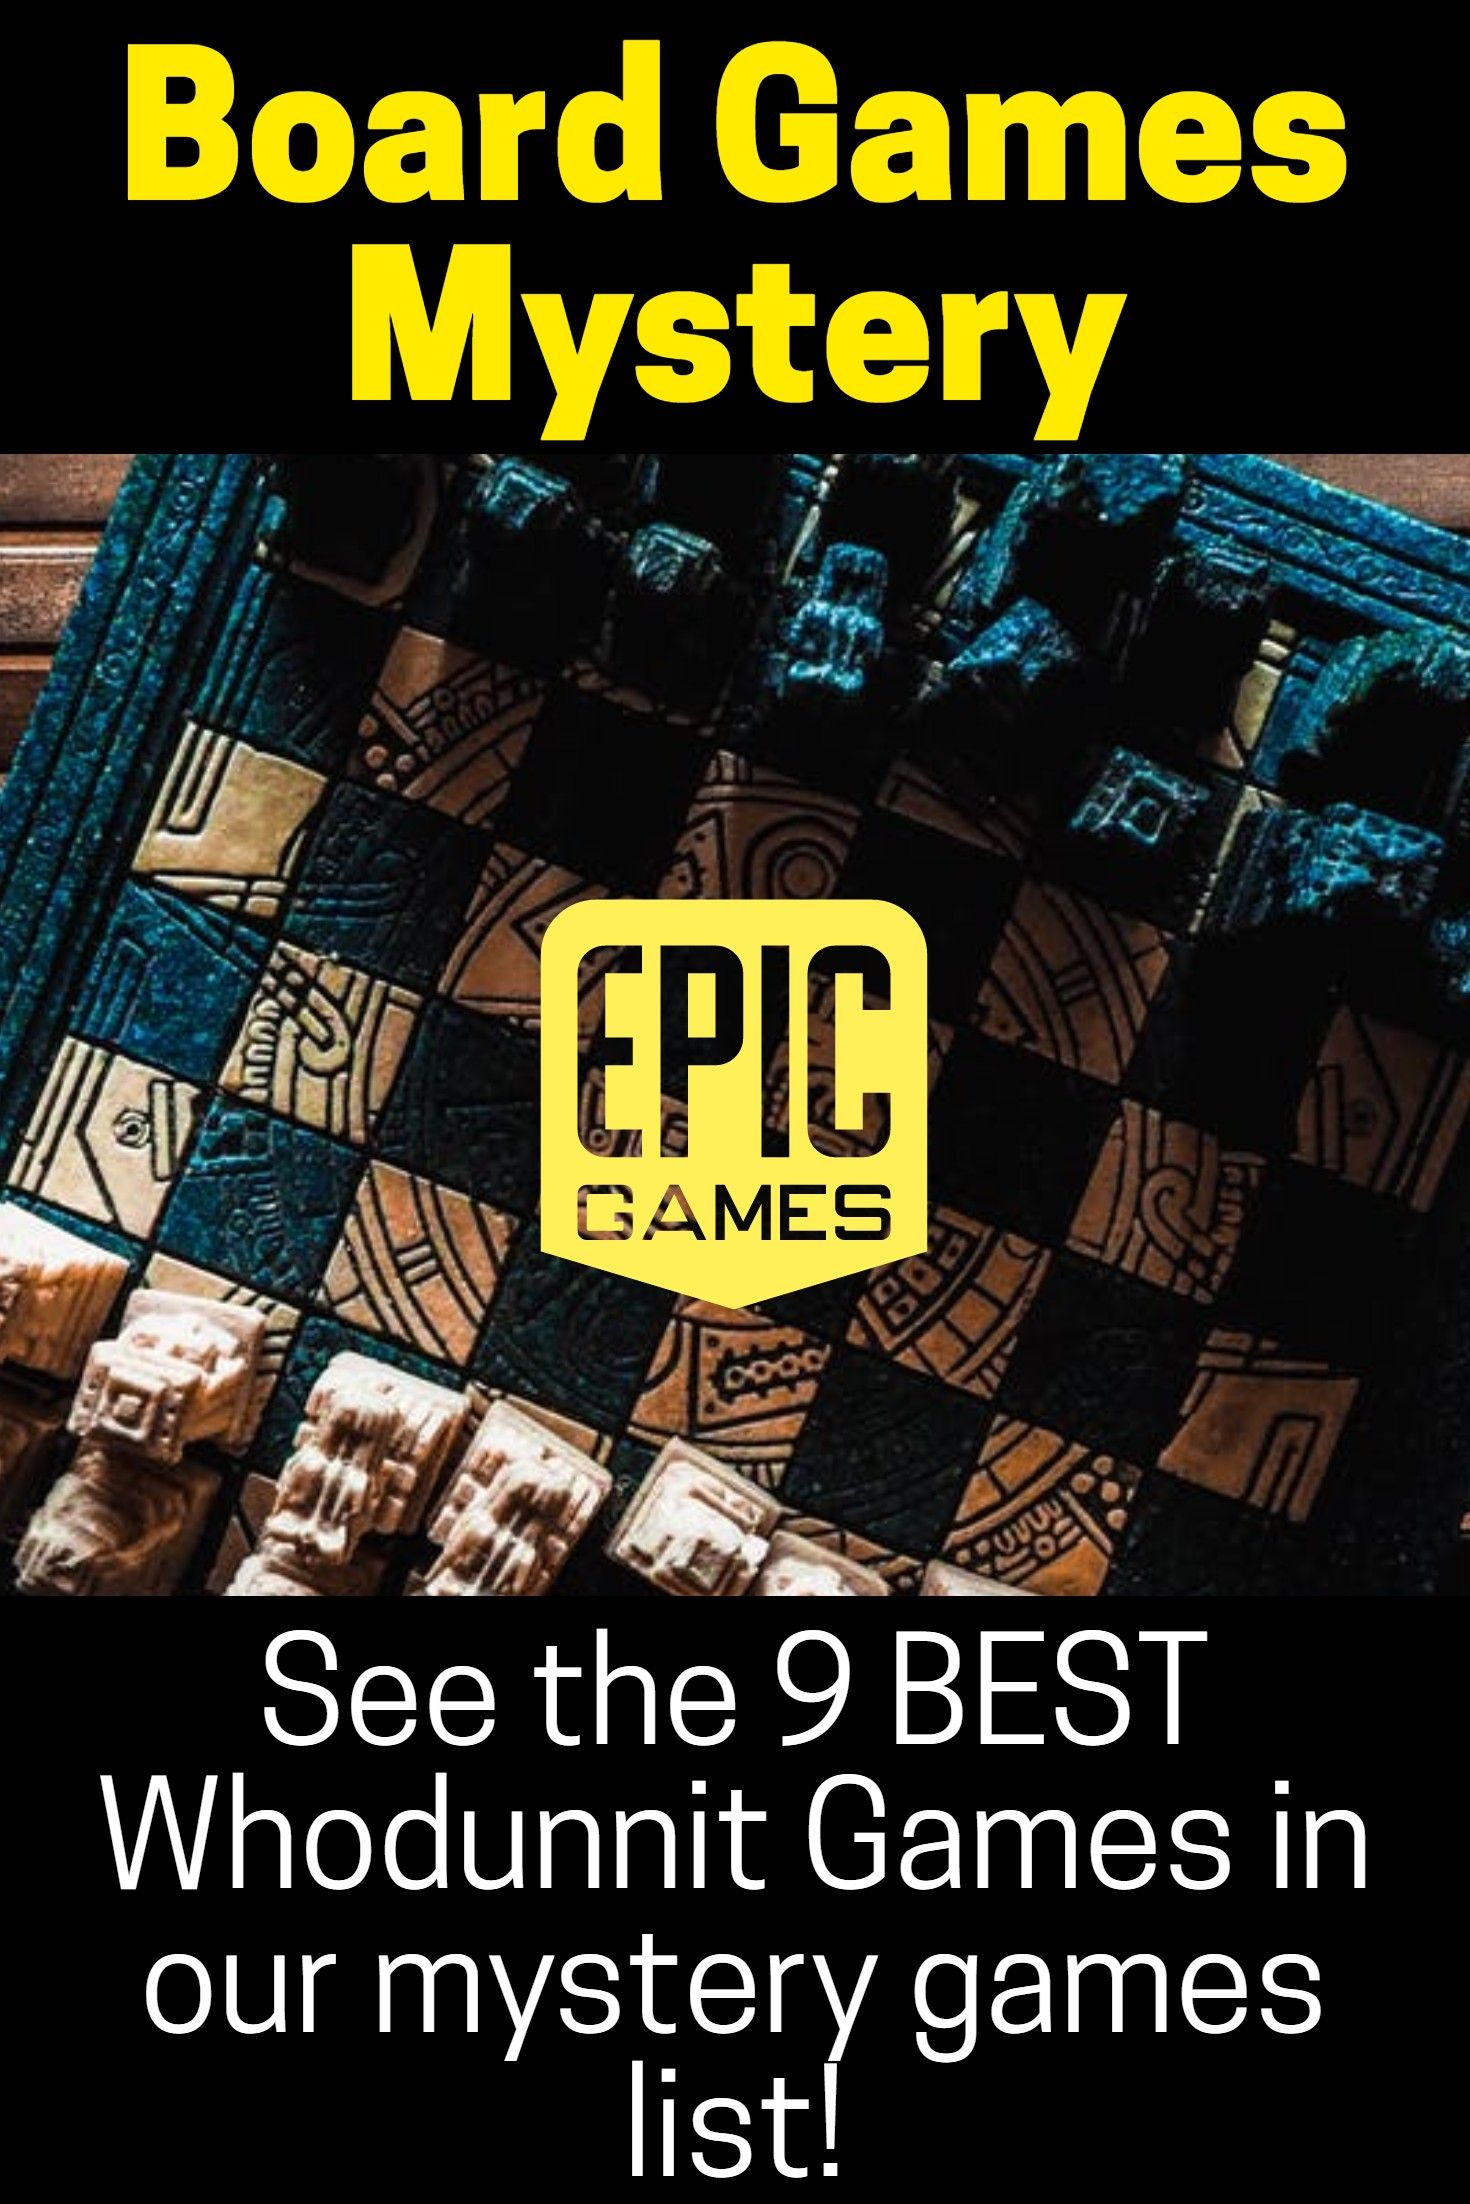 BOARD GAMES MYSTERY See the [9 BEST Whodunnit Games] in